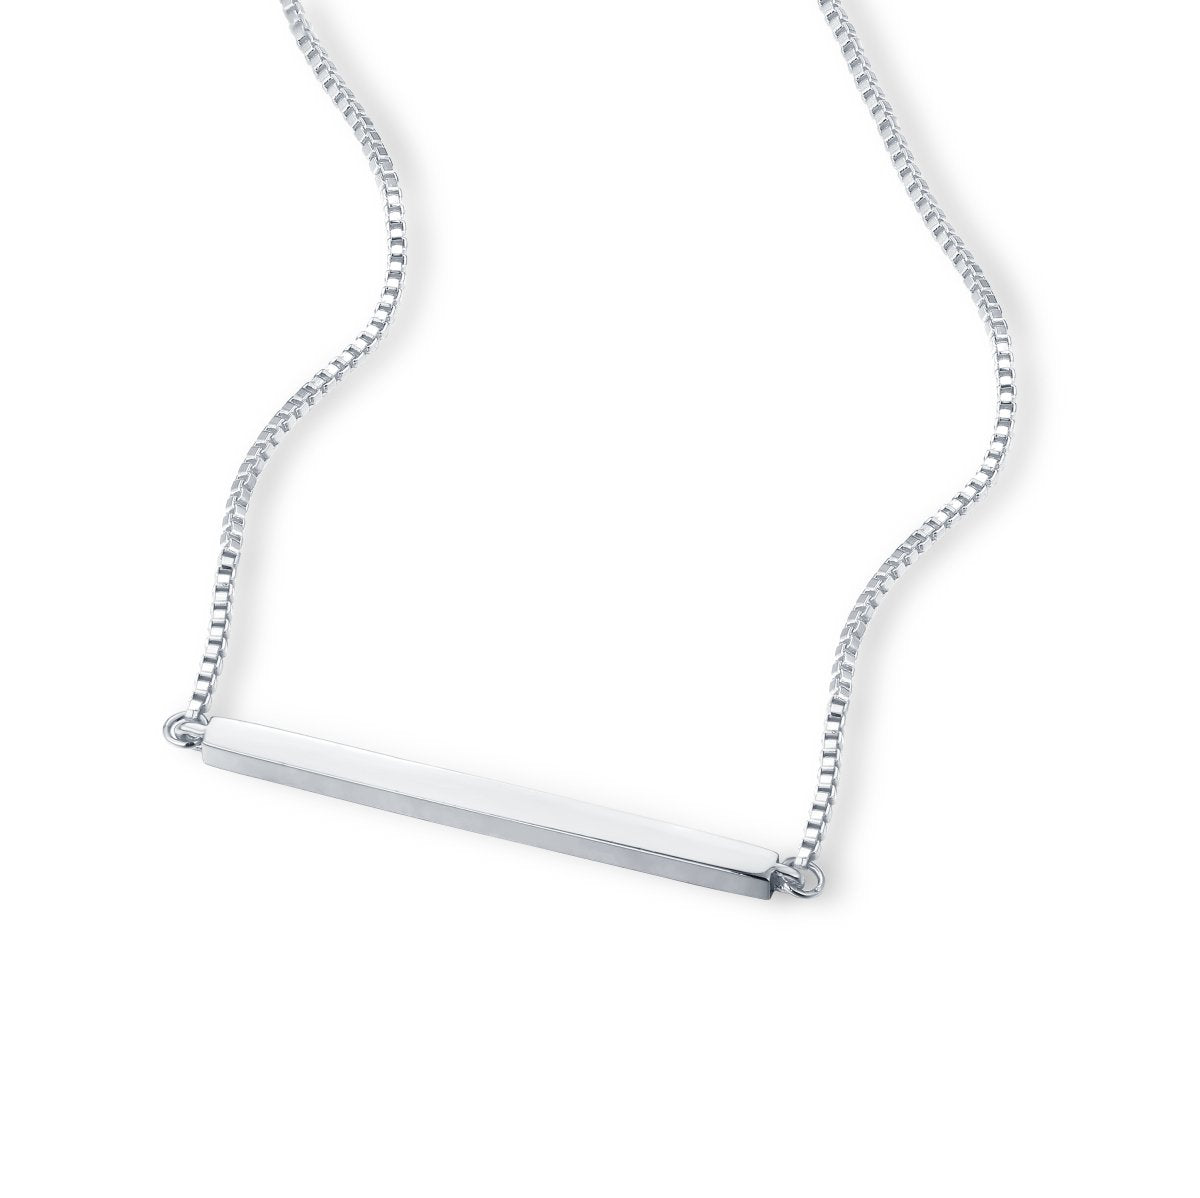 CLARA BAR NECKLACE - STERLING SILVER PLATED